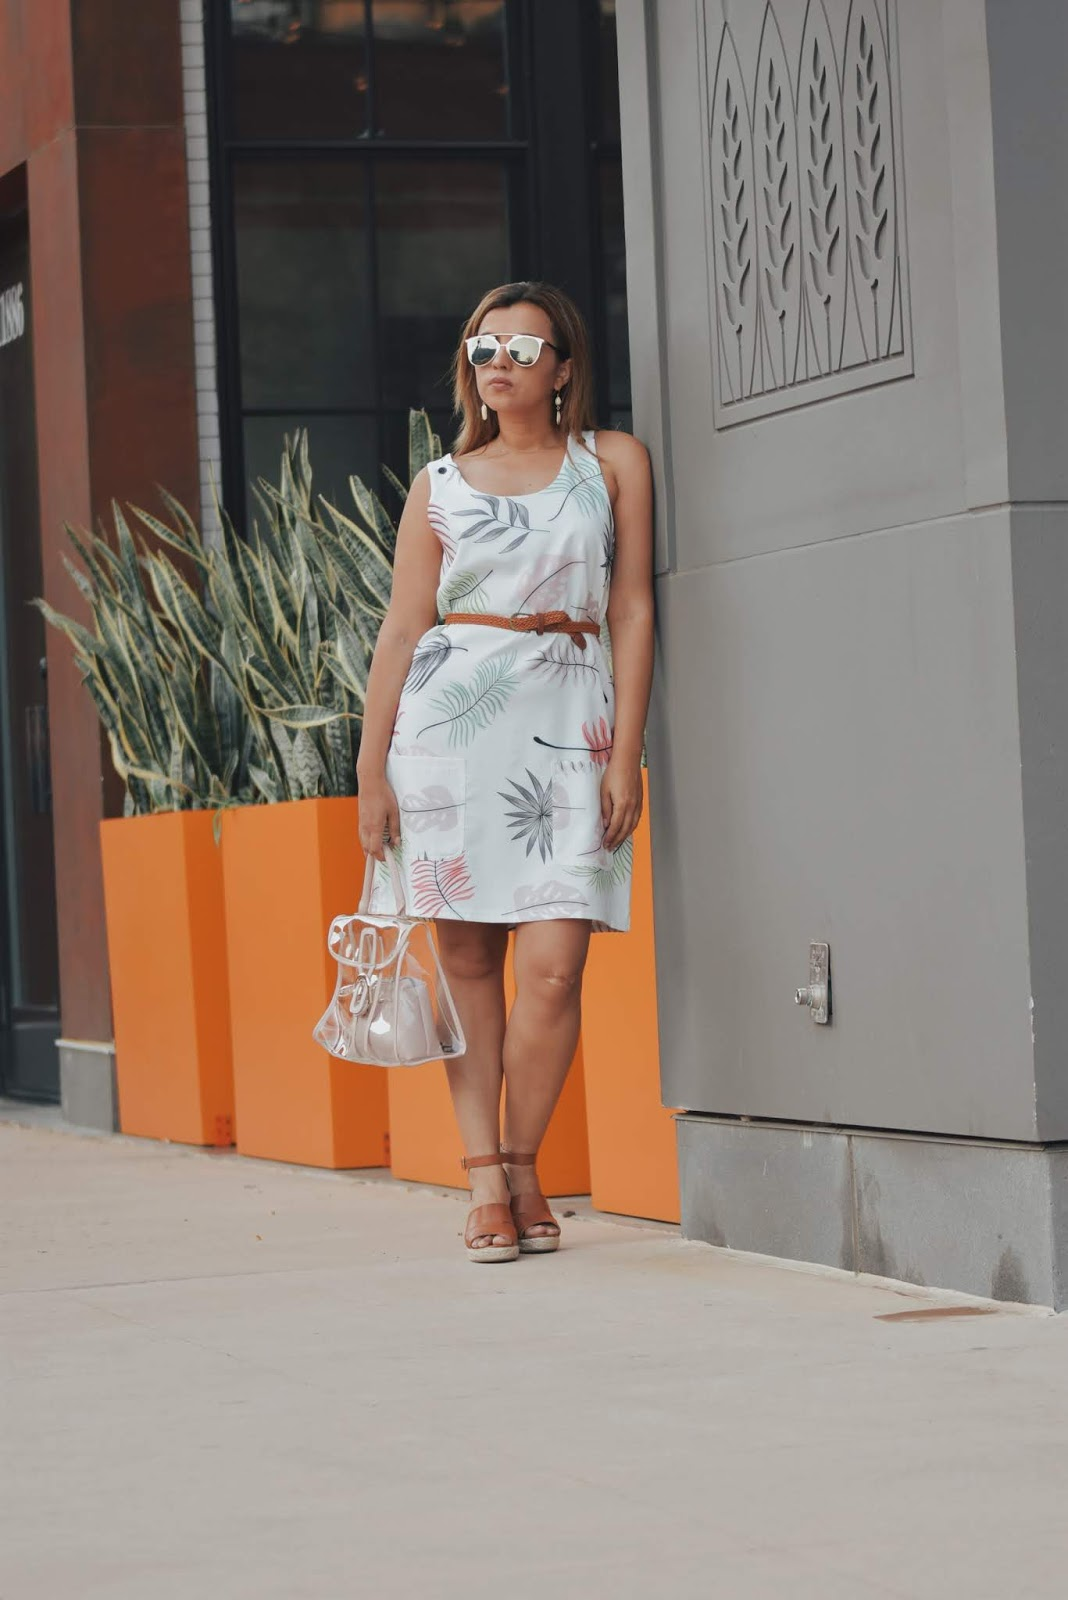 How to wear a White Leaf-Print Sleeveless Short Shift Dress by Mari Estilo-look of the day-lookbookstore-dcblogger-fashionblogger-streetstyle-modaelsalvador-modamexicana-